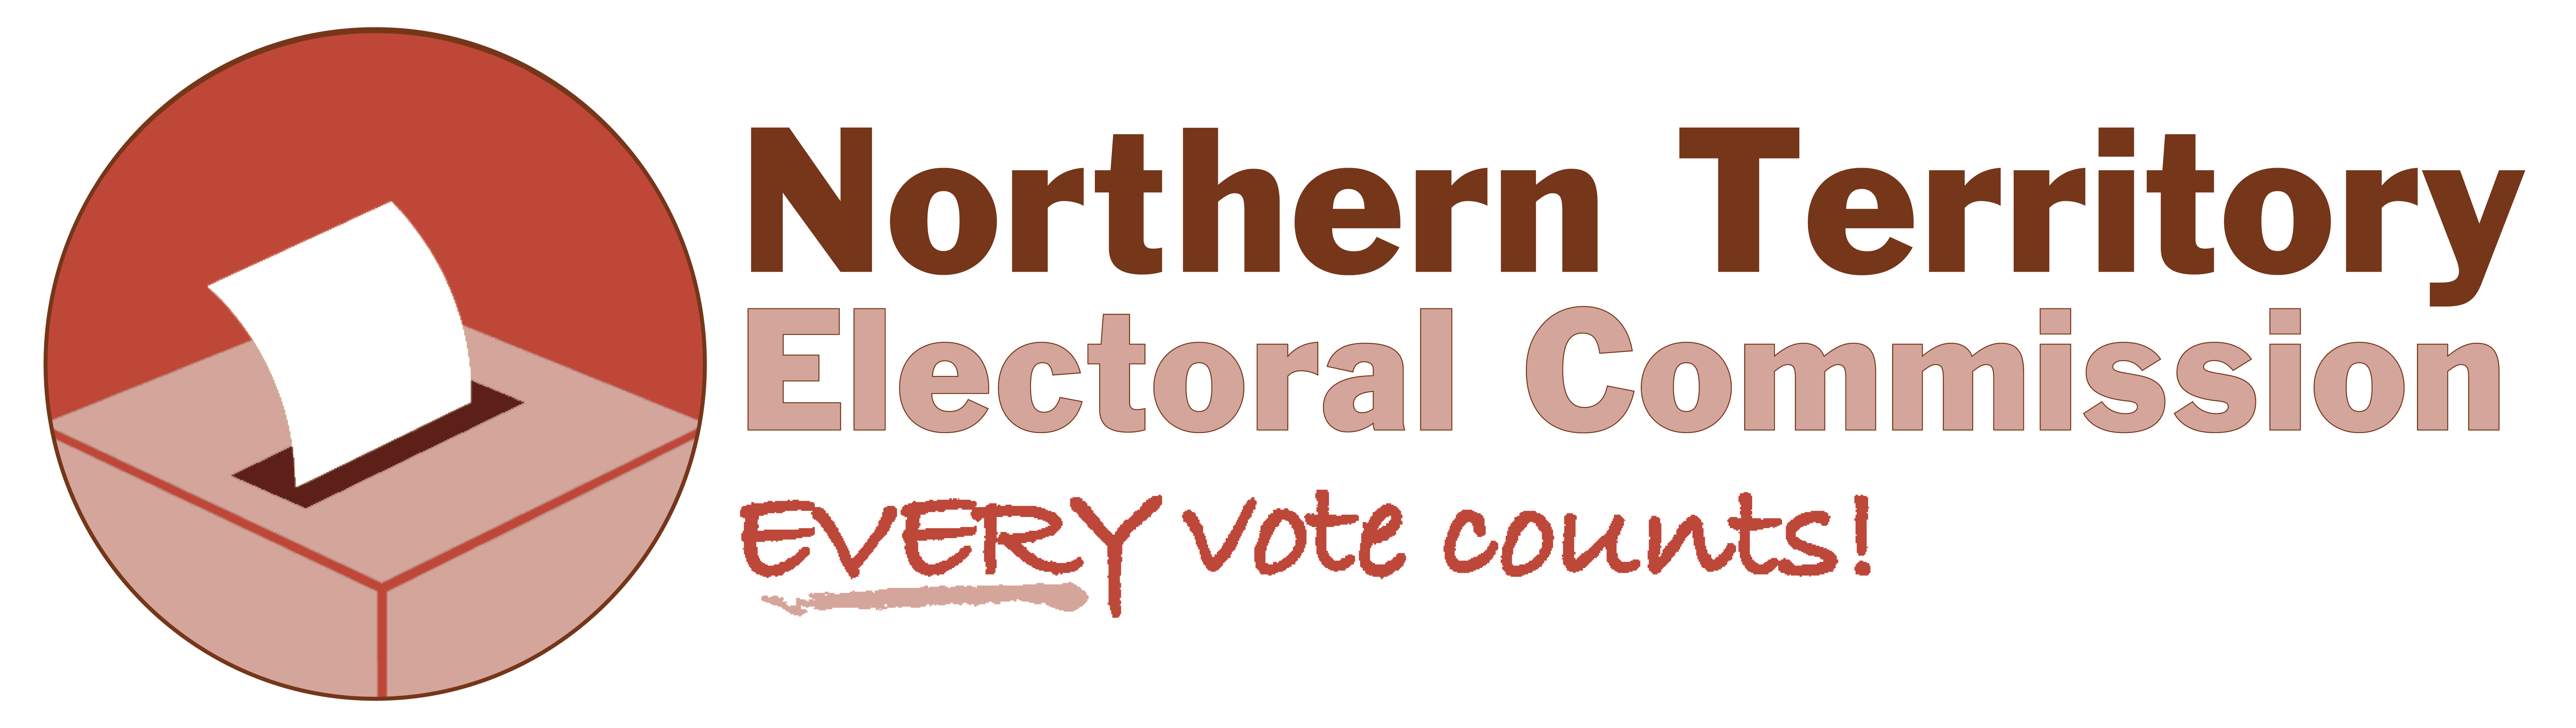 NT Electoral Commission logo and link.